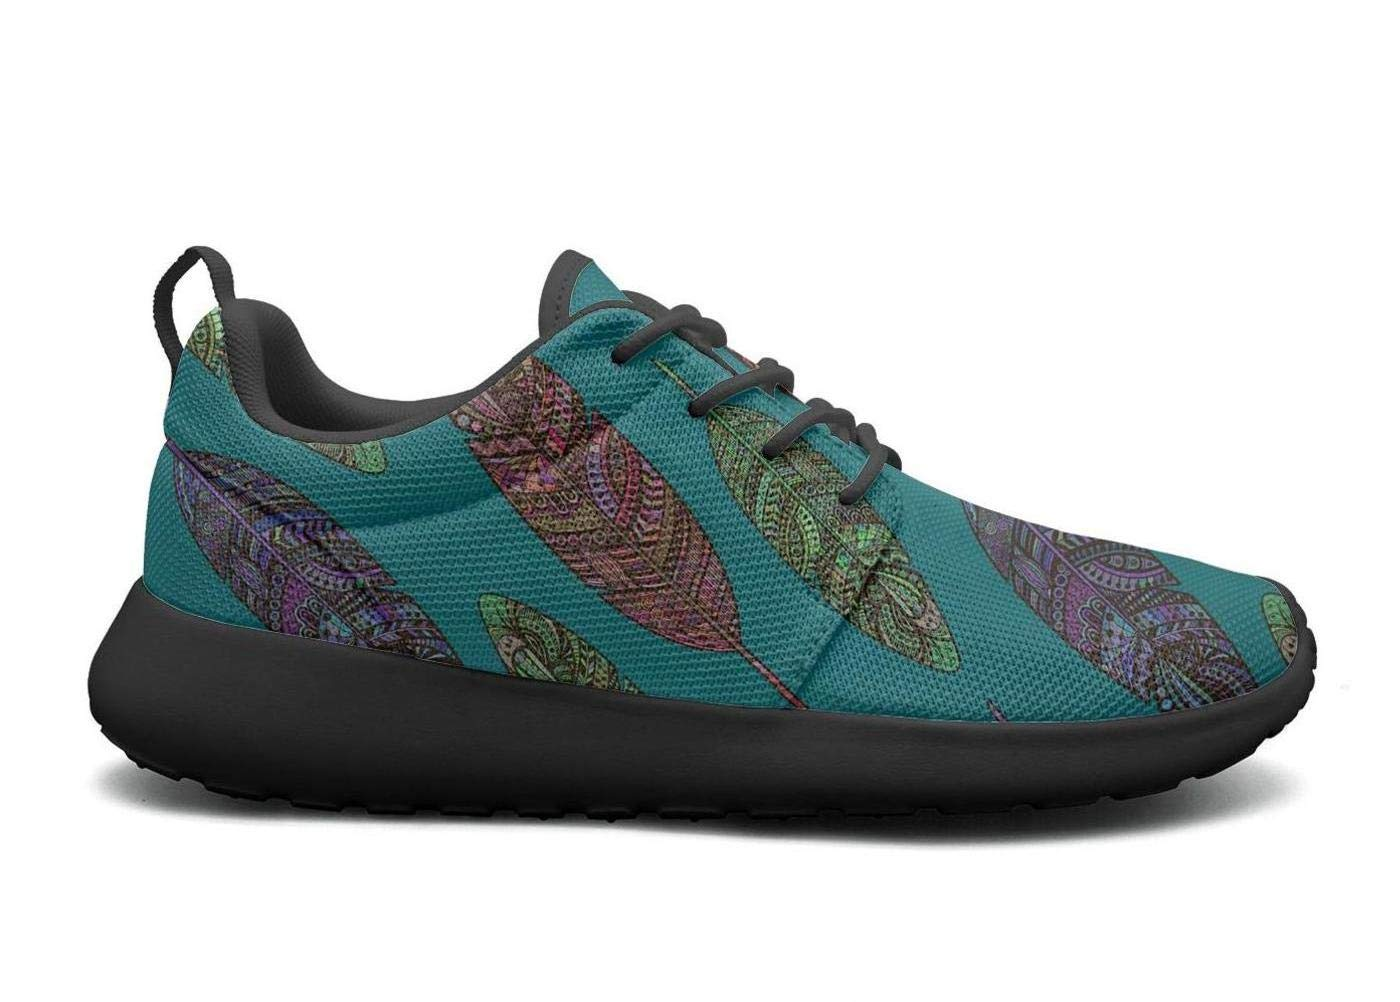 87d6a72e7376 Amazon.com  UISLE7 Feather Vintage Womens Cozy Lightweight Sneakers Running  Shoes Athletic  Sports   Outdoors